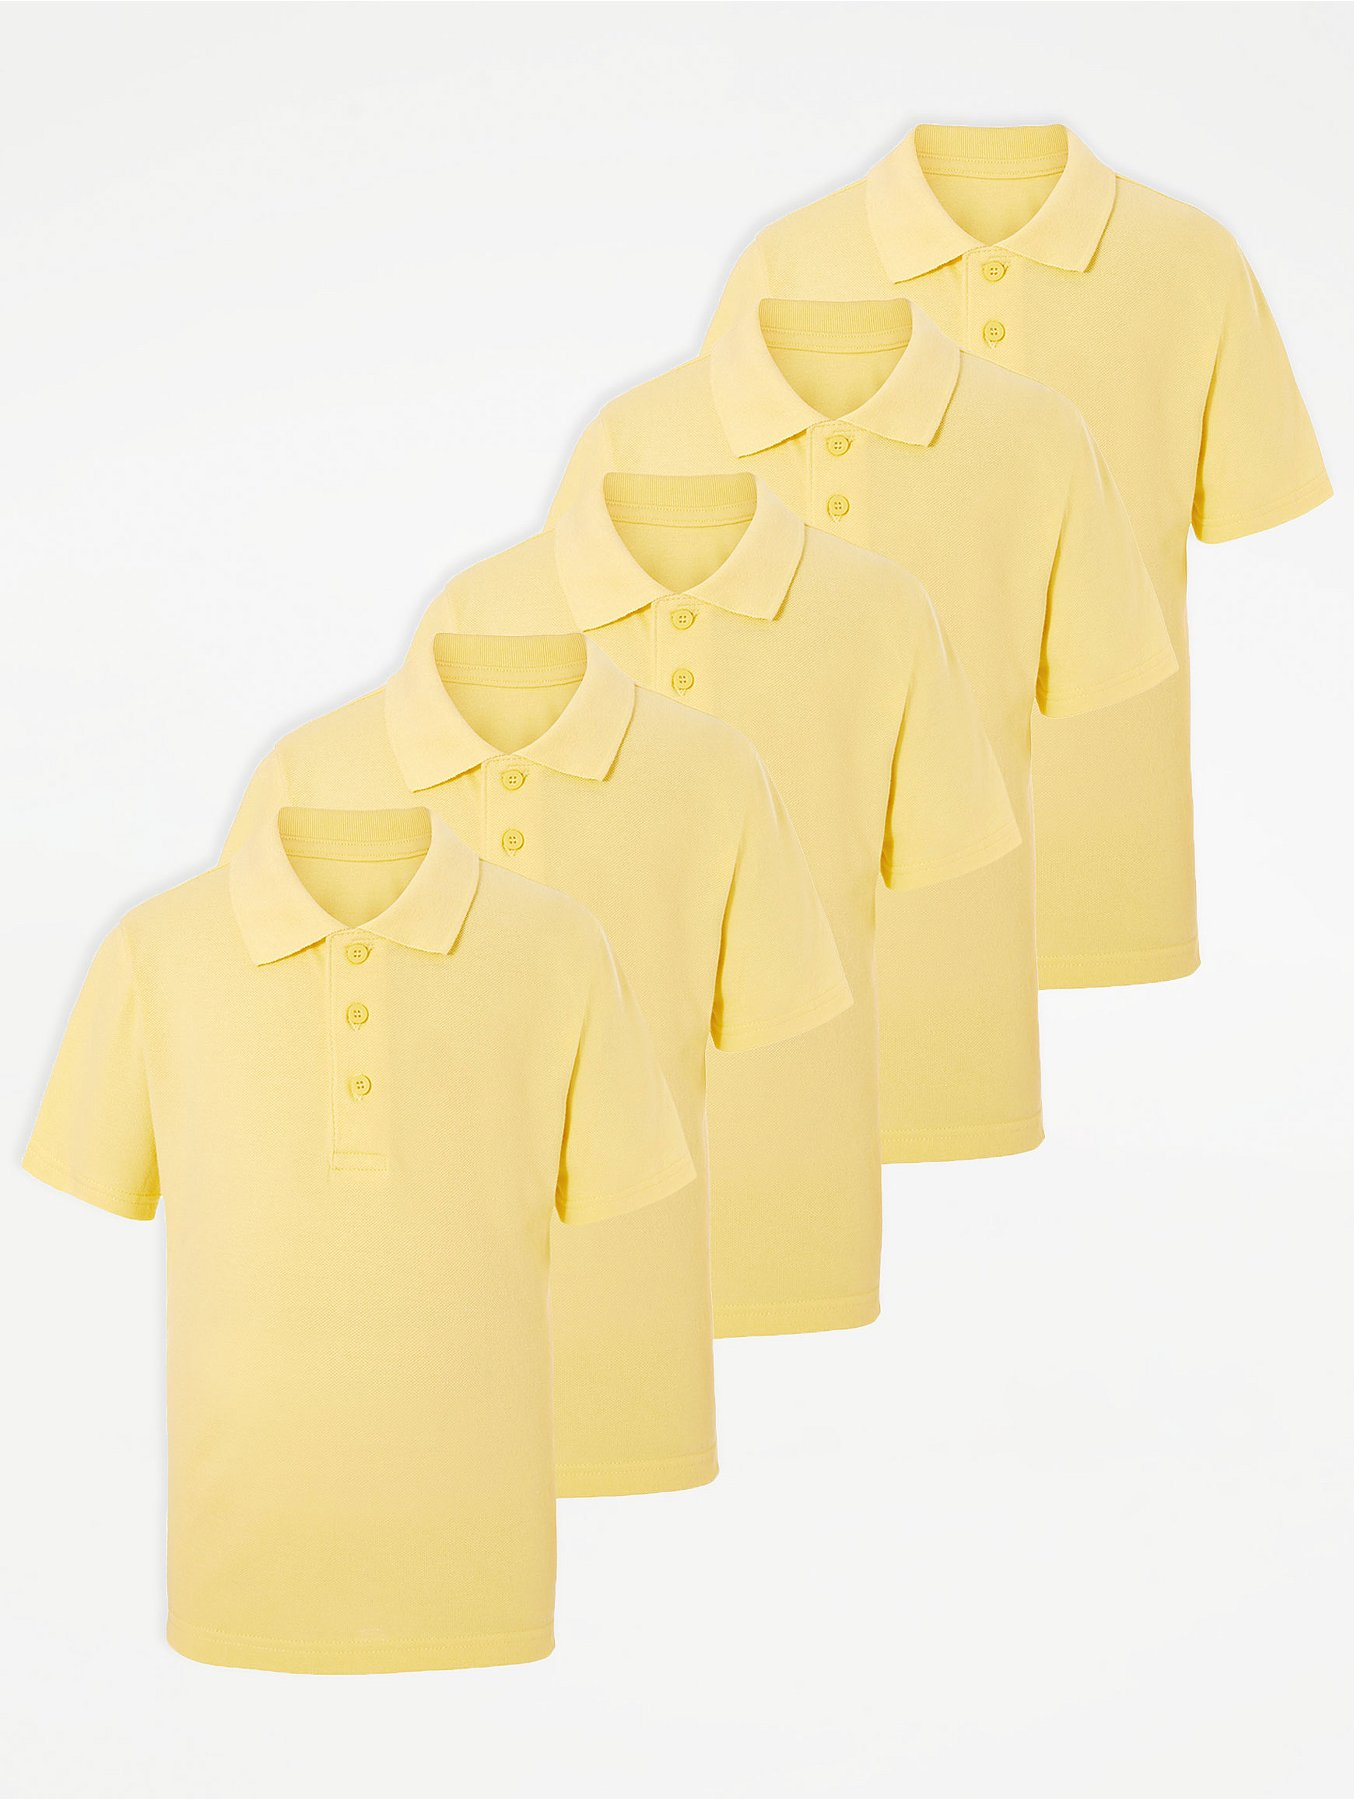 Yellow School Polo Shirt 5 Pack School George